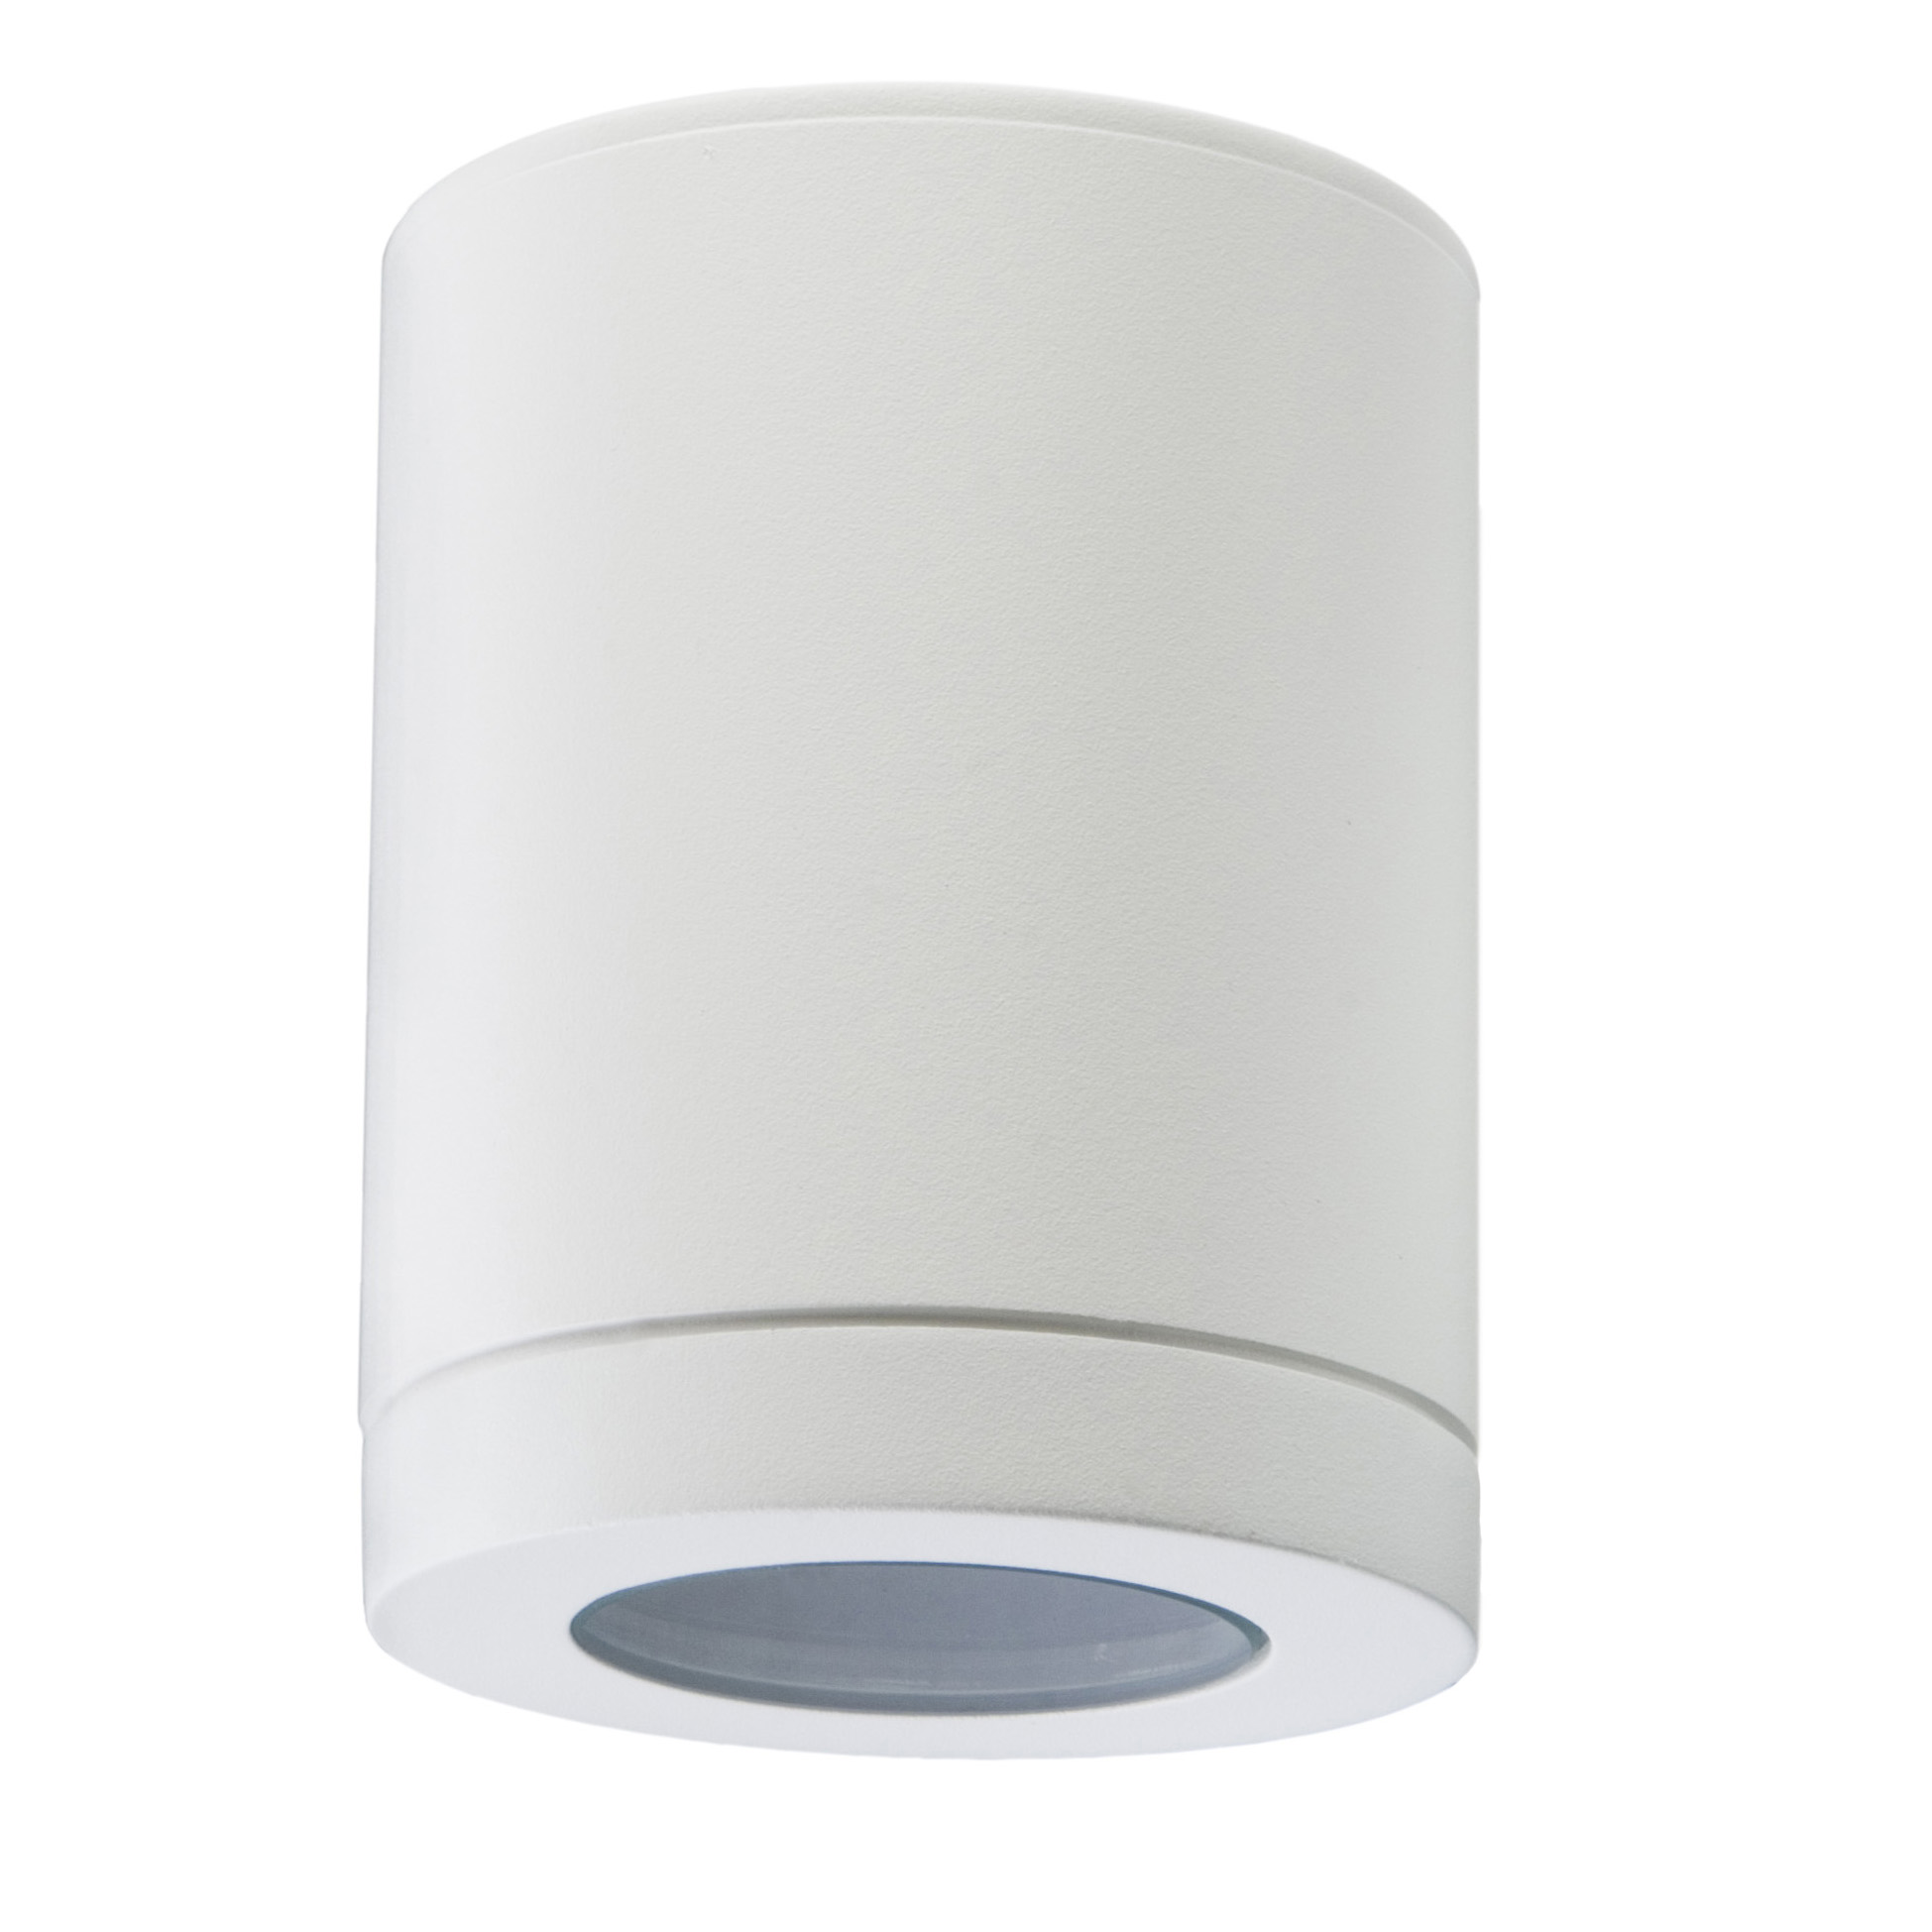 SG lighting LED Metro wit 611695 plafond